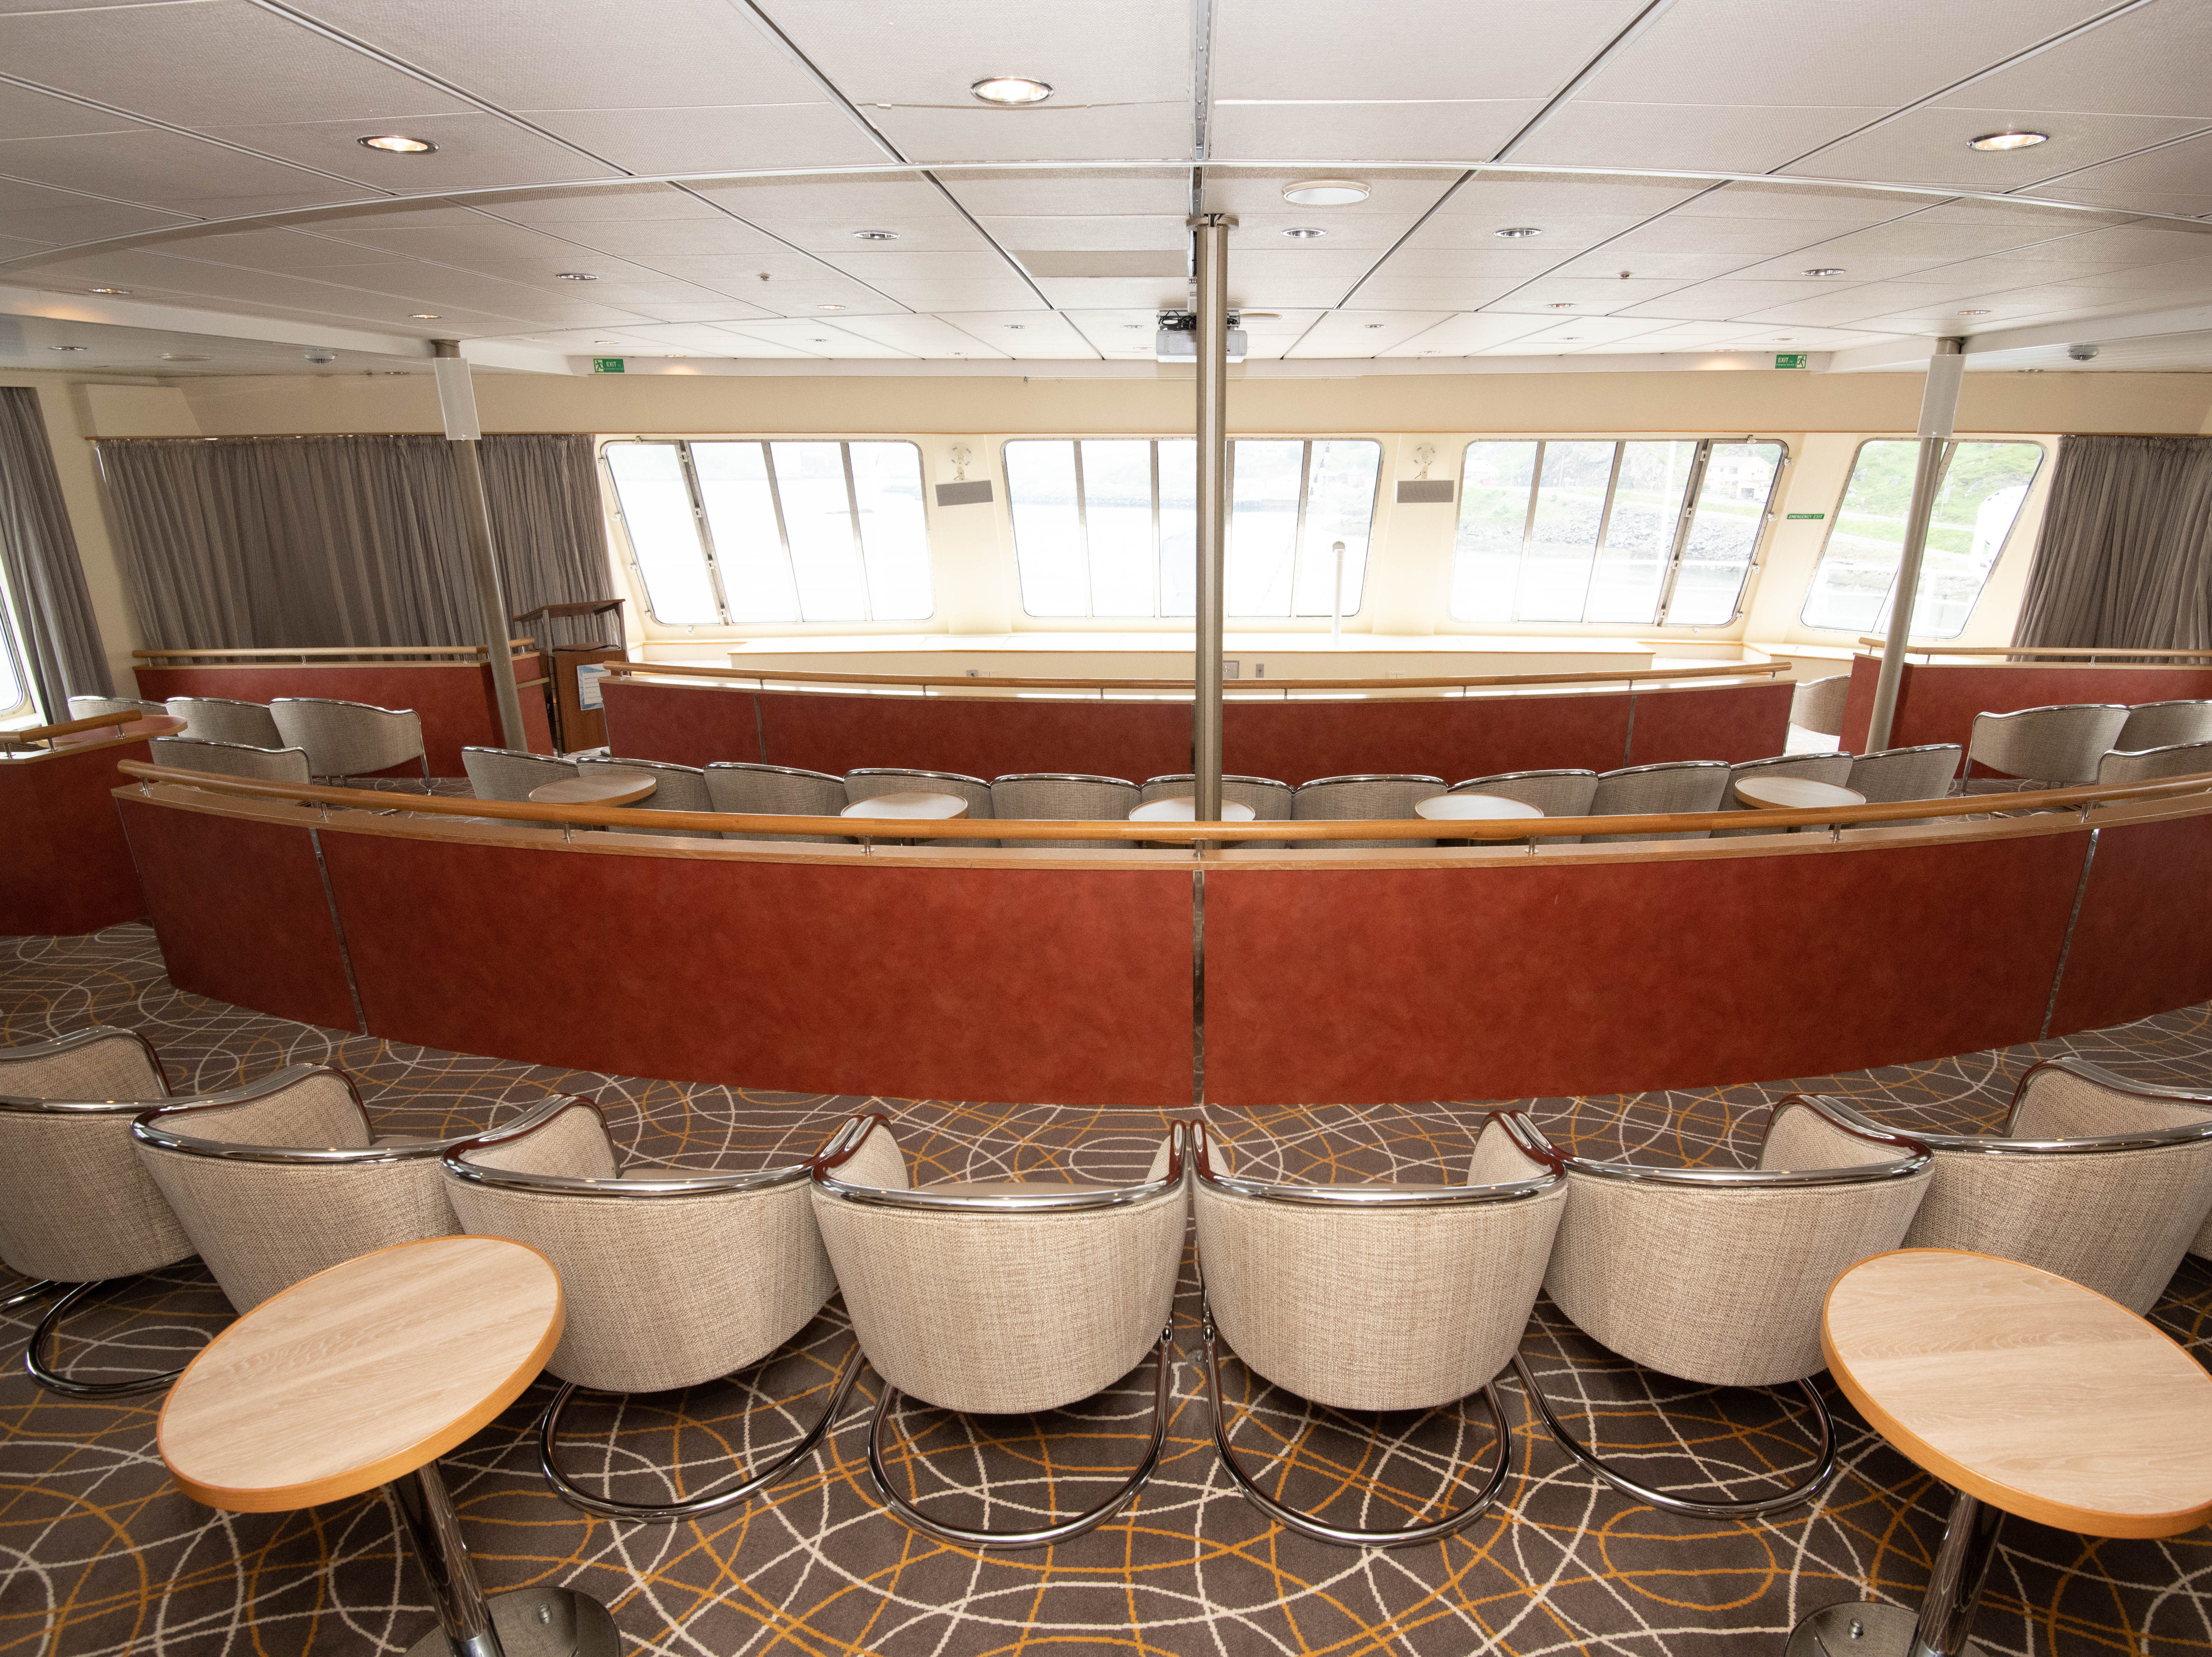 The Panorama Lounge is located at the front of the ship on Deck 7.